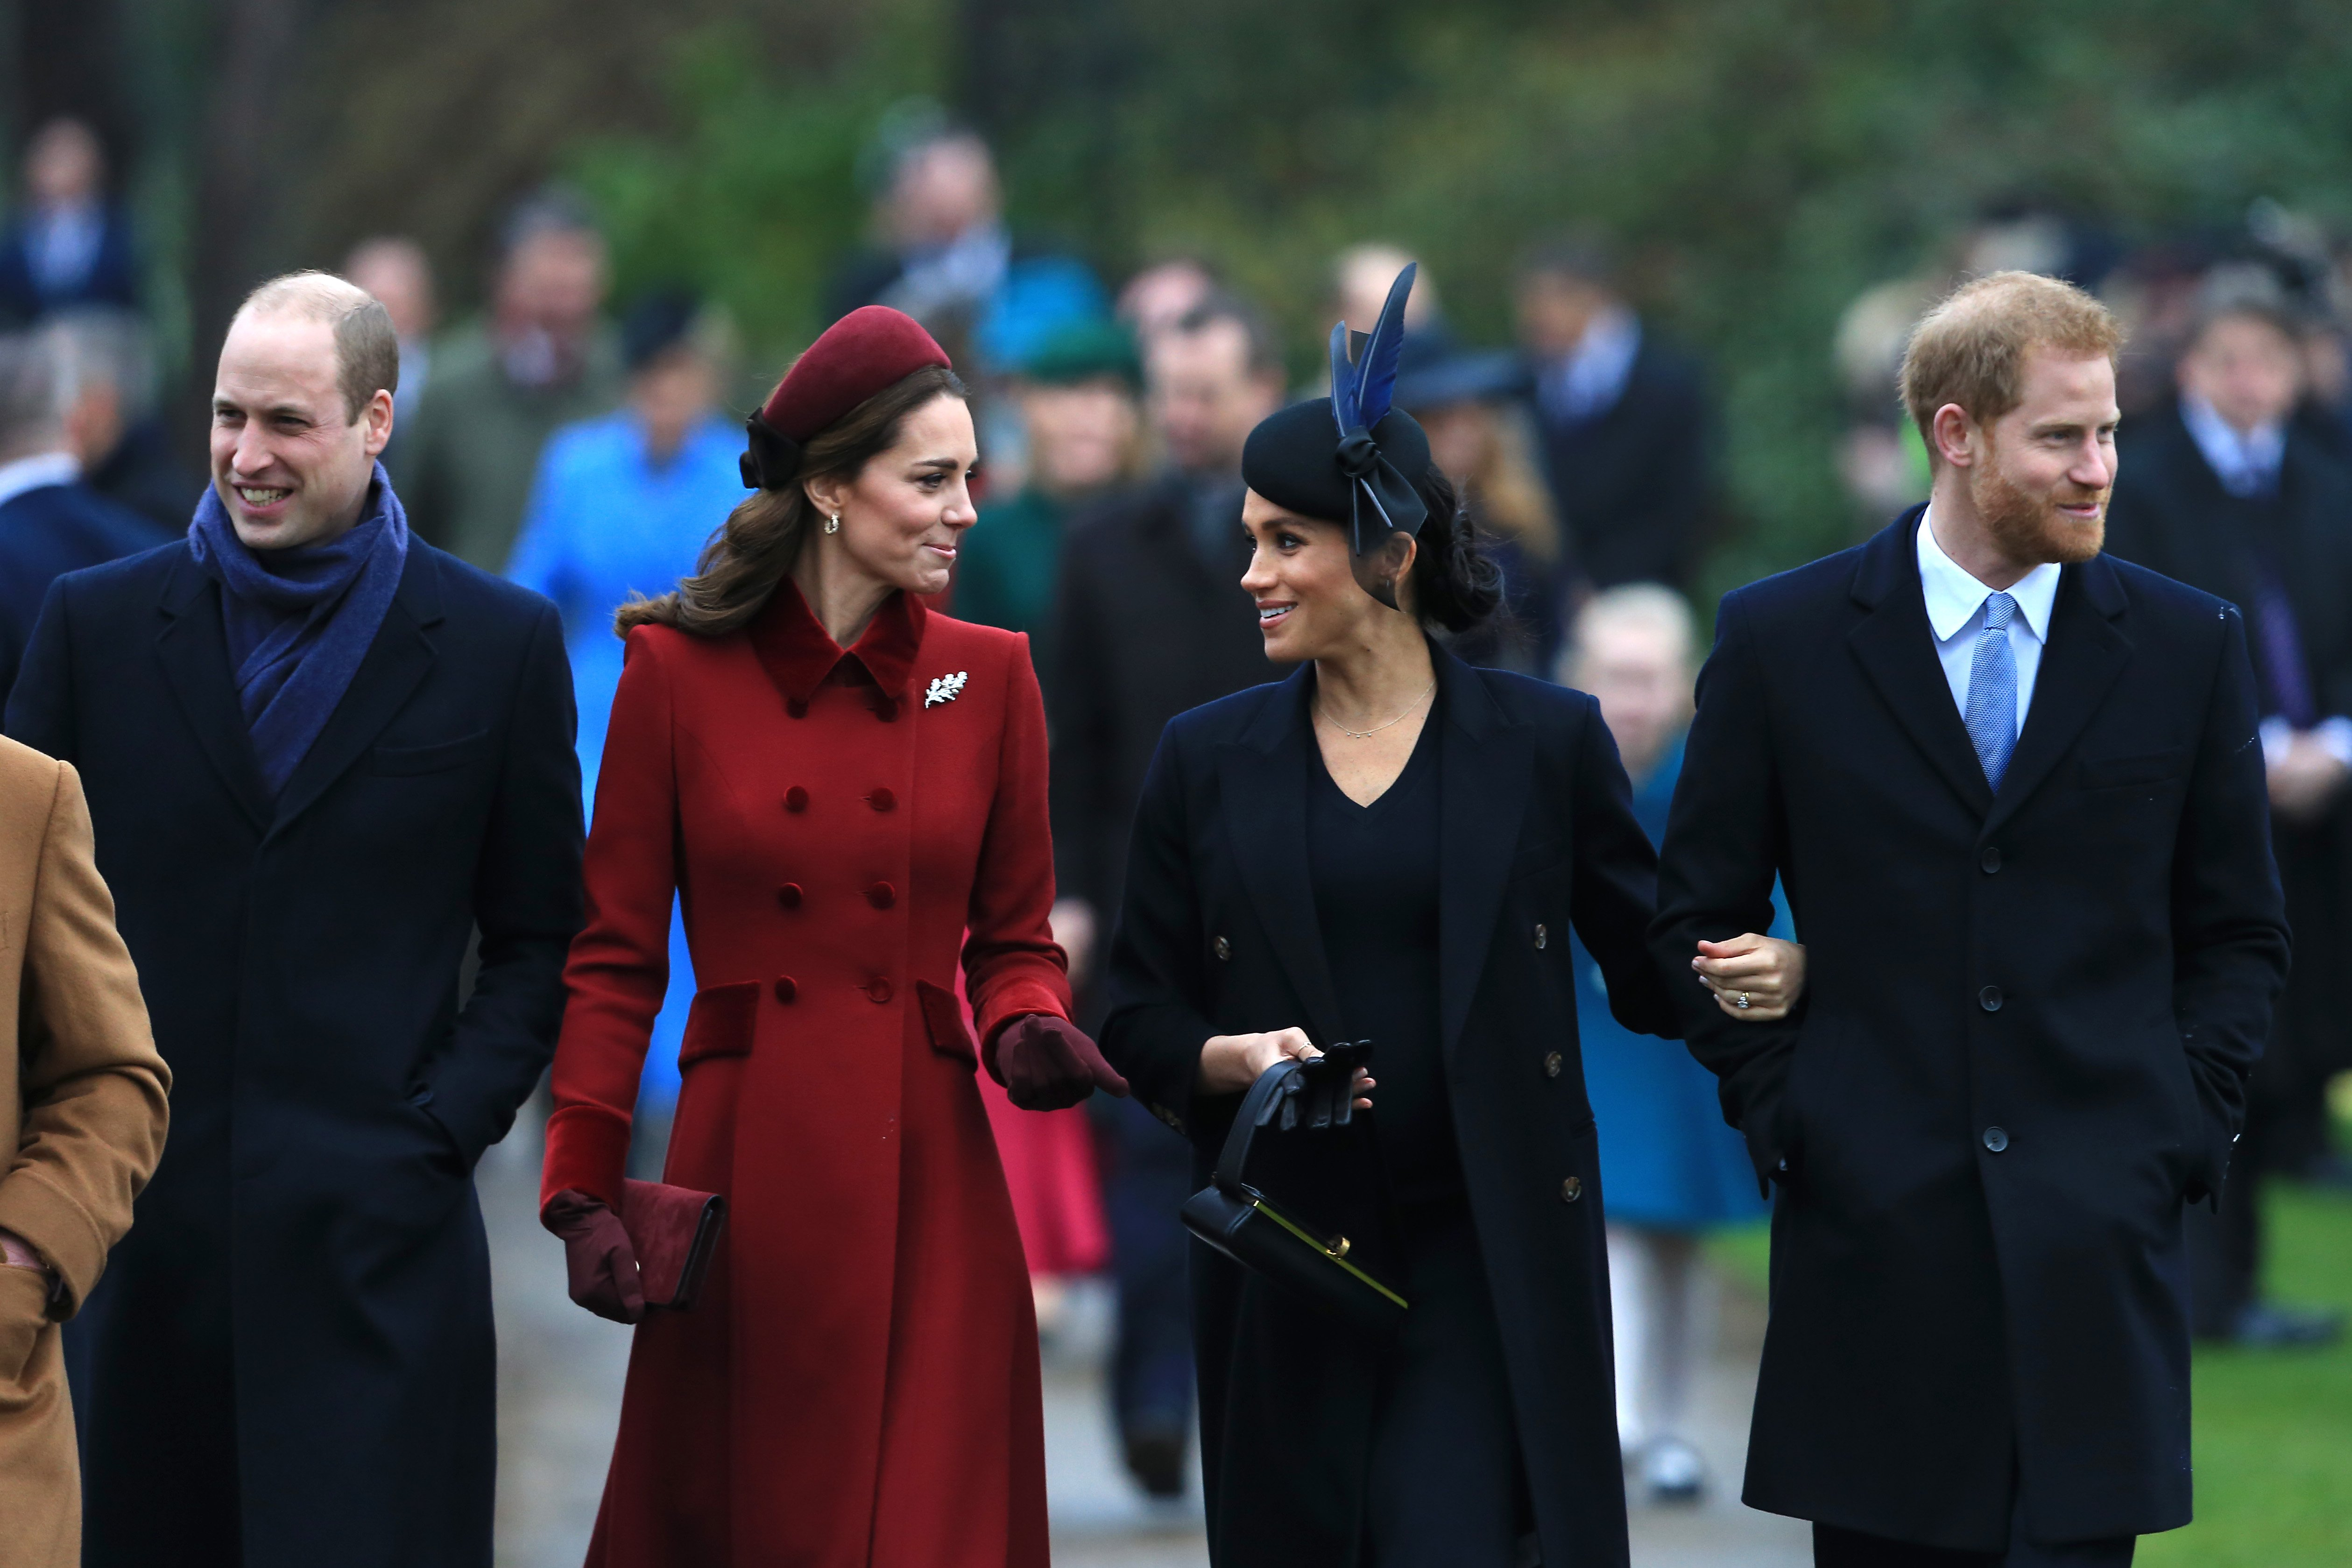 Prince William, Catherine, Meghan and Prince Harry, Duke of Sussex arrive to attend Christmas Day Church service at Church of St Mary Magdalene on the Sandringham estate on December 25, 2018. | Photo: Getty Images